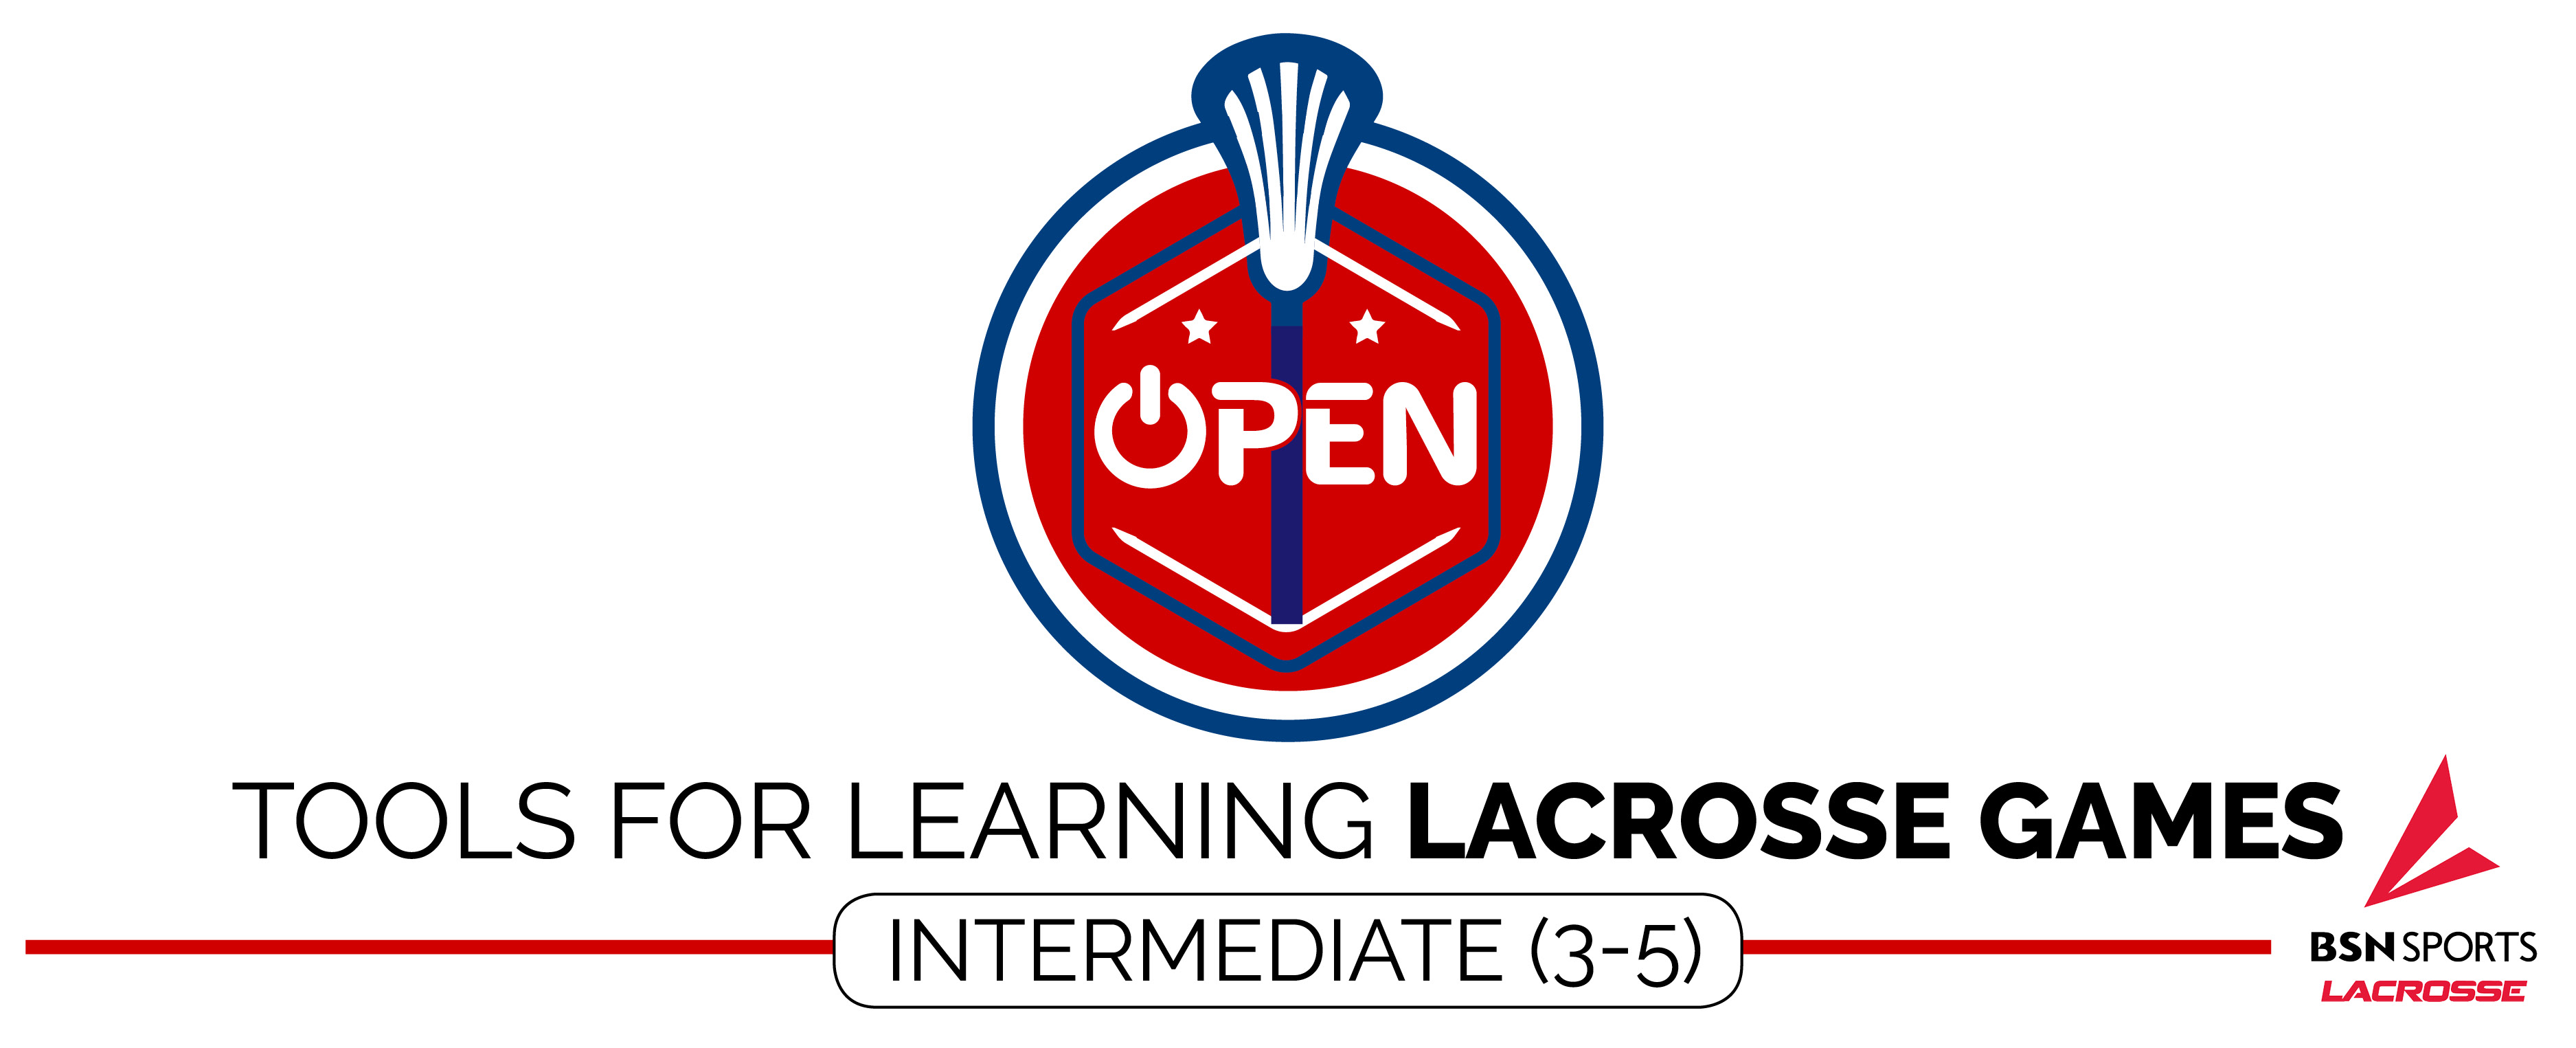 Lacrosse(Intermediate 3-5)